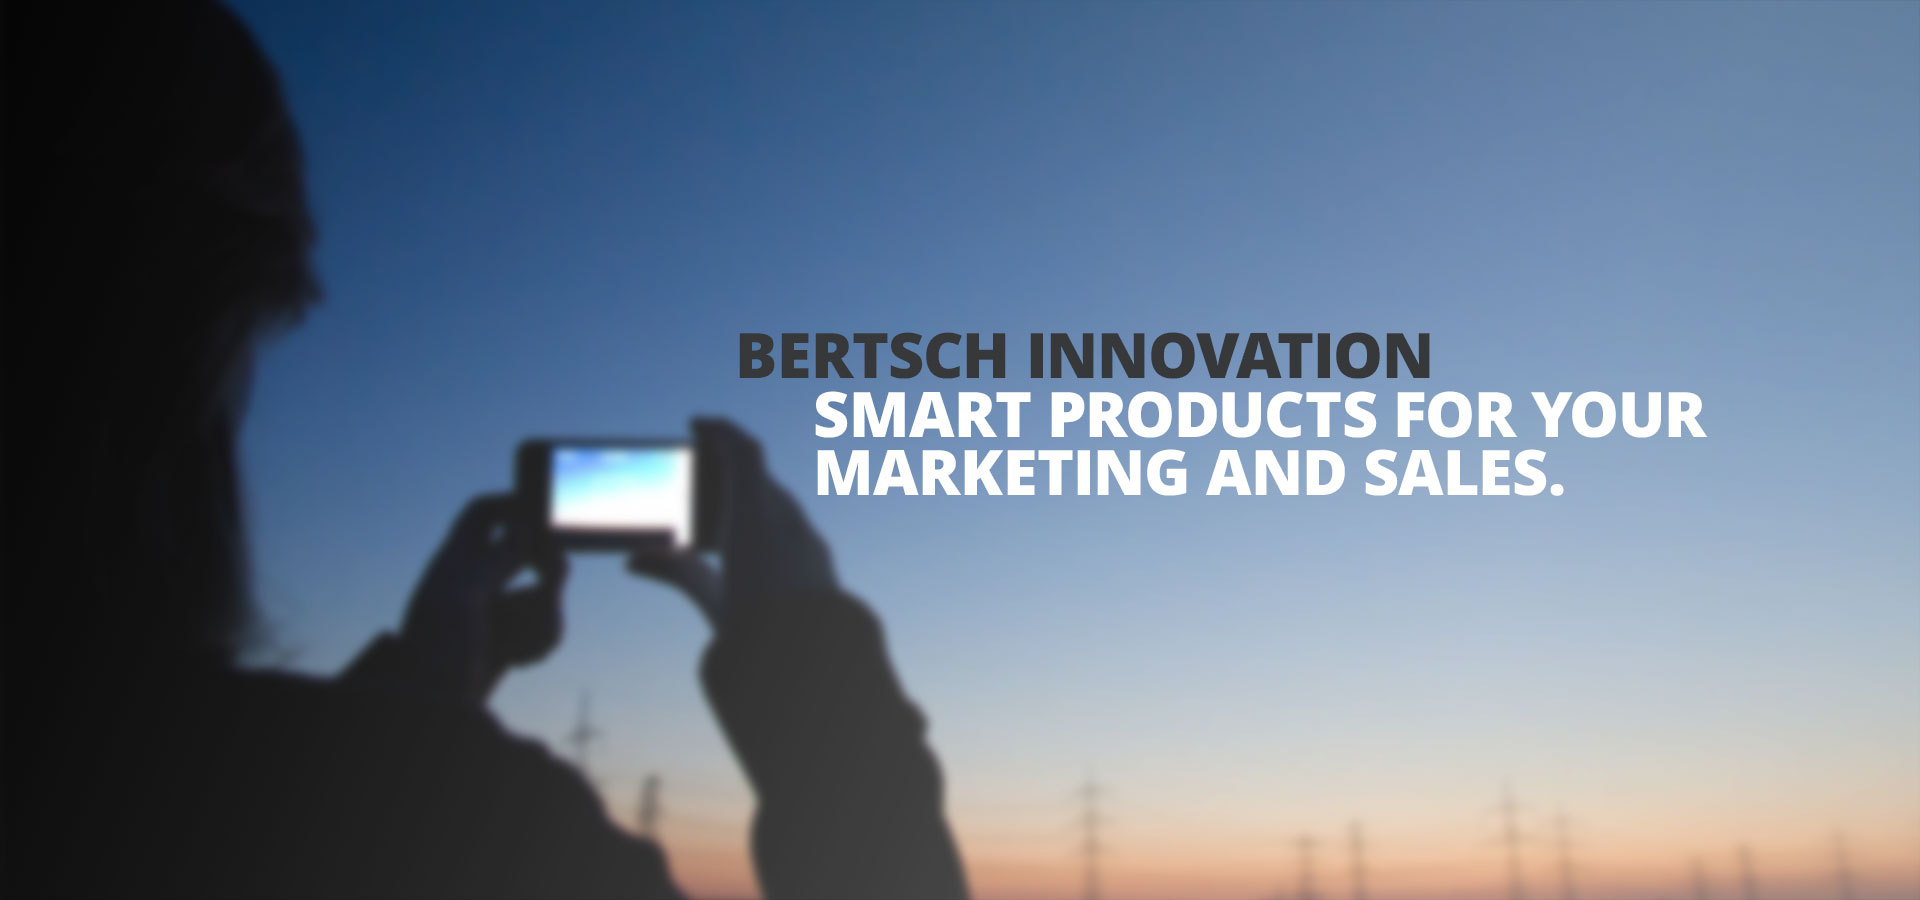 Bertsch Innovation. Smart products for your marketing and sales.